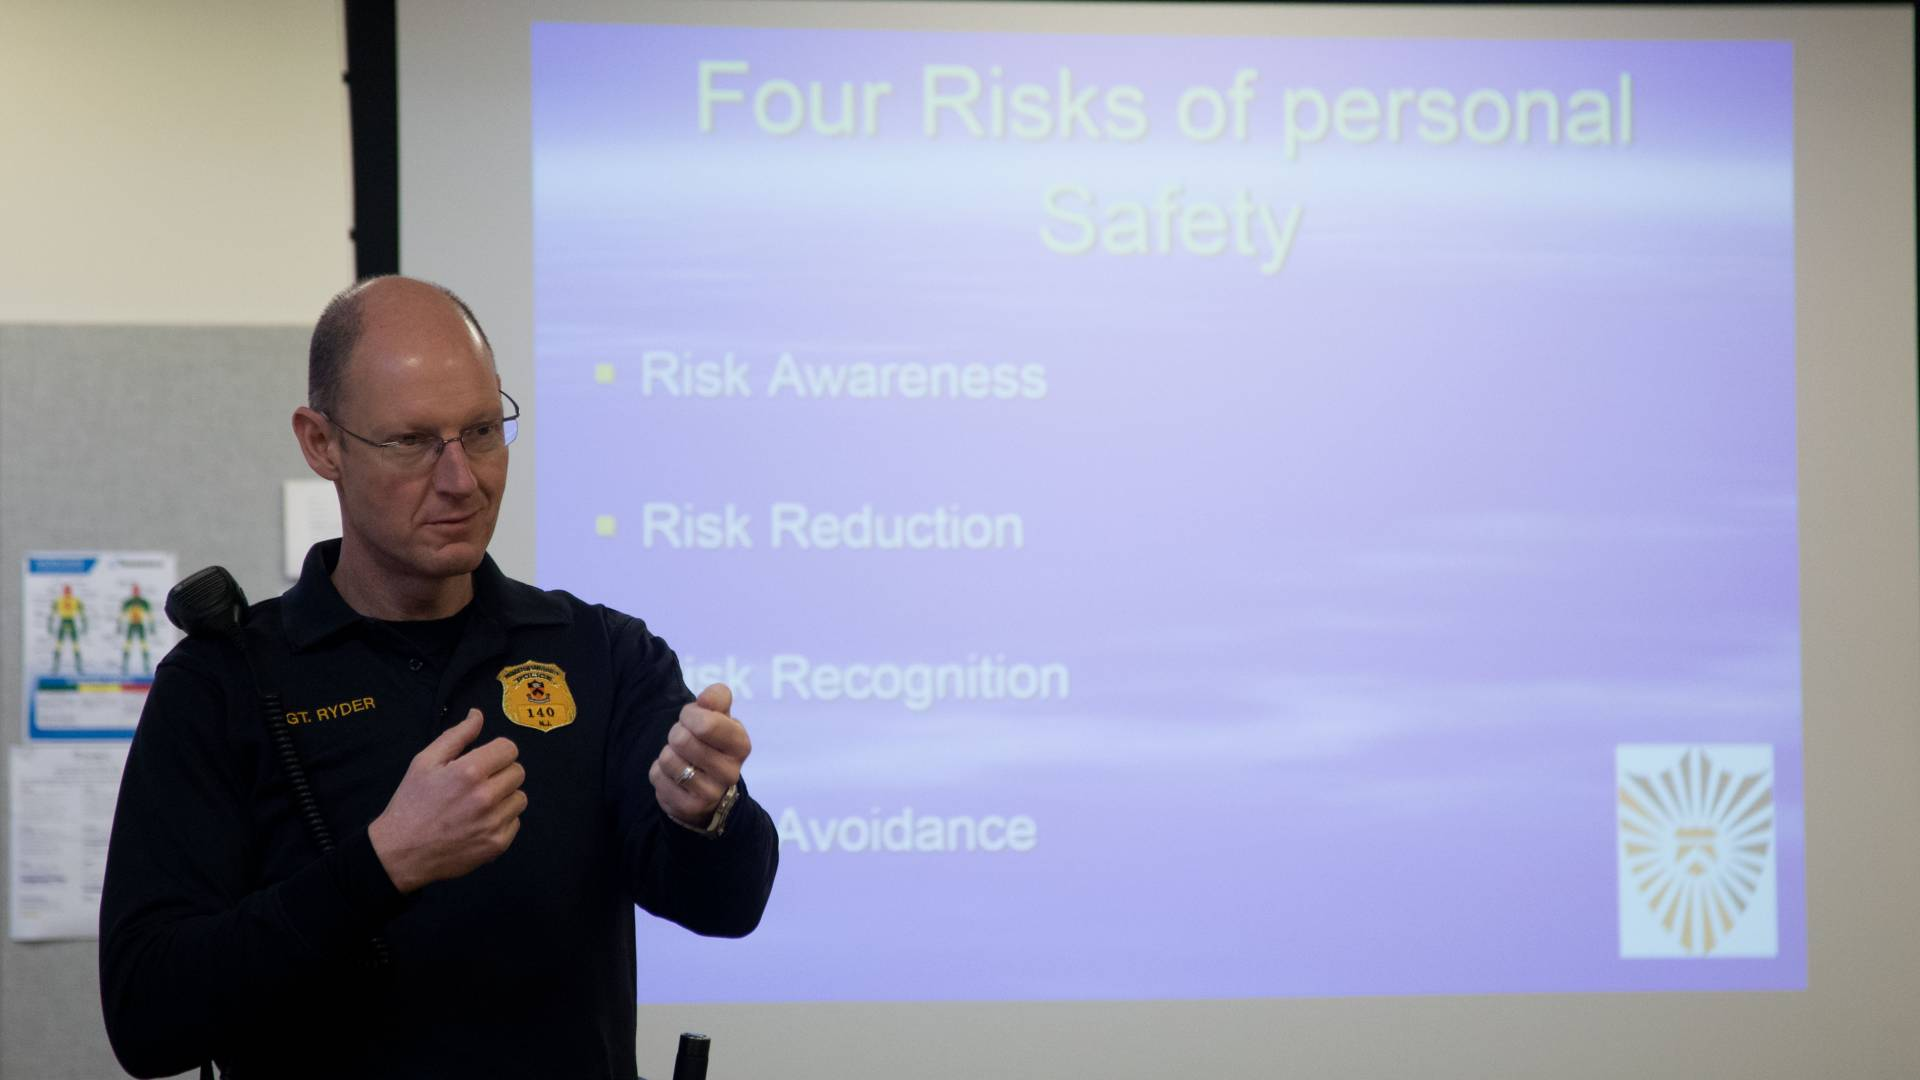 Public Safety officer Sean Ryder teaching safety course; Text on Slide: Four Risks of Personal Safety; Risk Awareness; Risk Reduction; Risk Recognition; Risk Avoidance